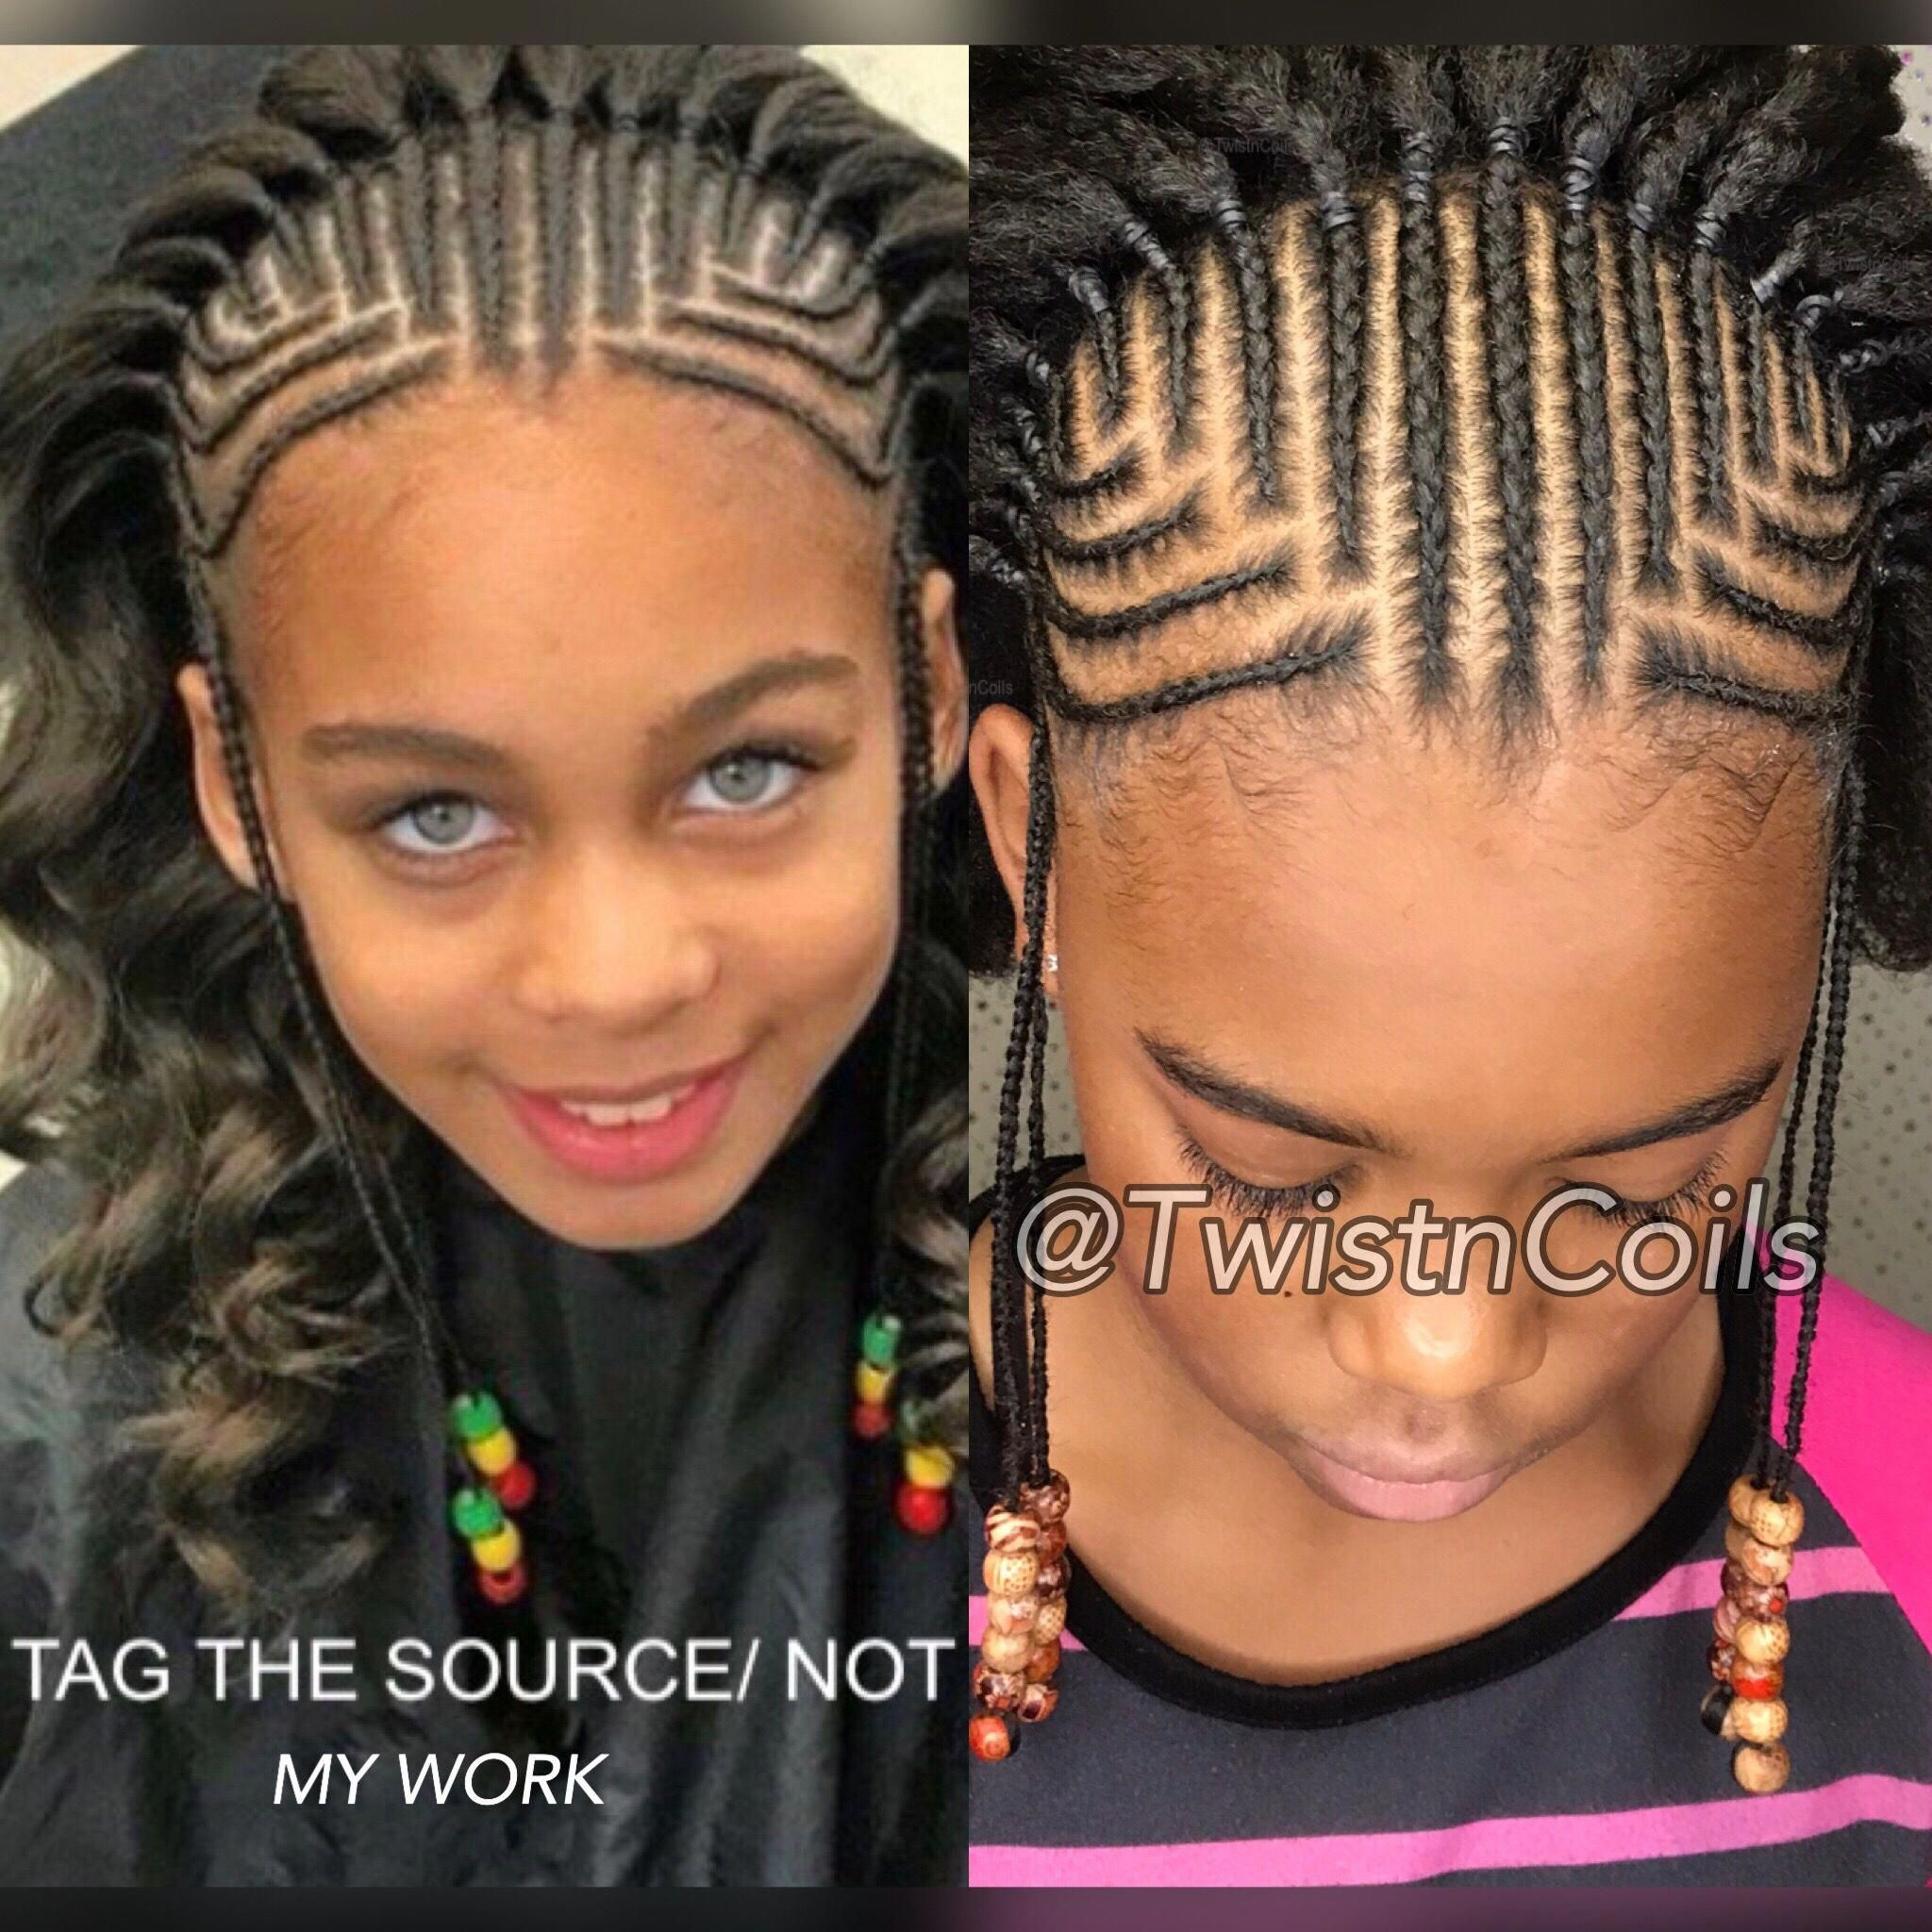 These Natural Hairstyles For Teens Are Trendy Naturalhairstylesforteens Natural Hair Styles Hair Styles Kids Hairstyles